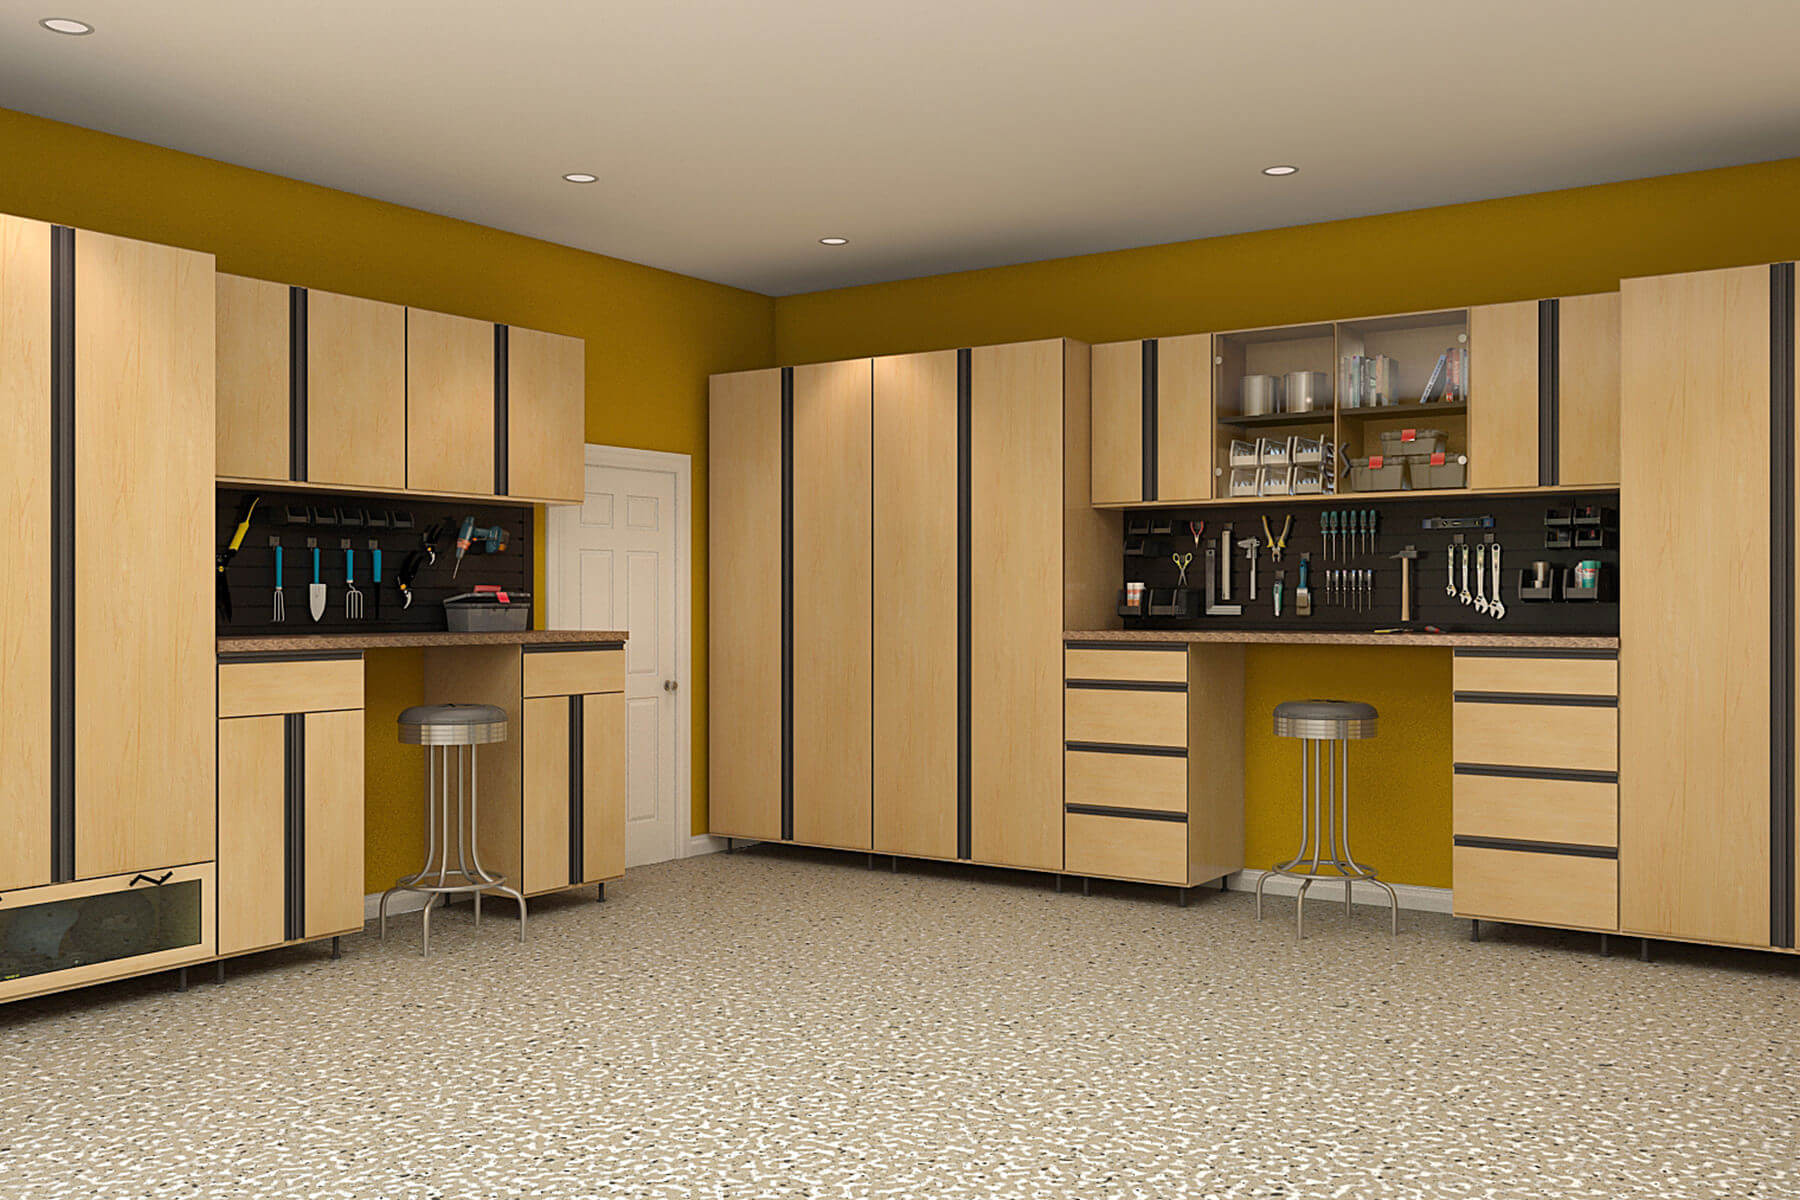 Simple yet sophisticated is what the hardrock maple cabinets designed with black extrusions on its doors and drawer fronts manage to achieve. Yellow walls in the background create a chic look.